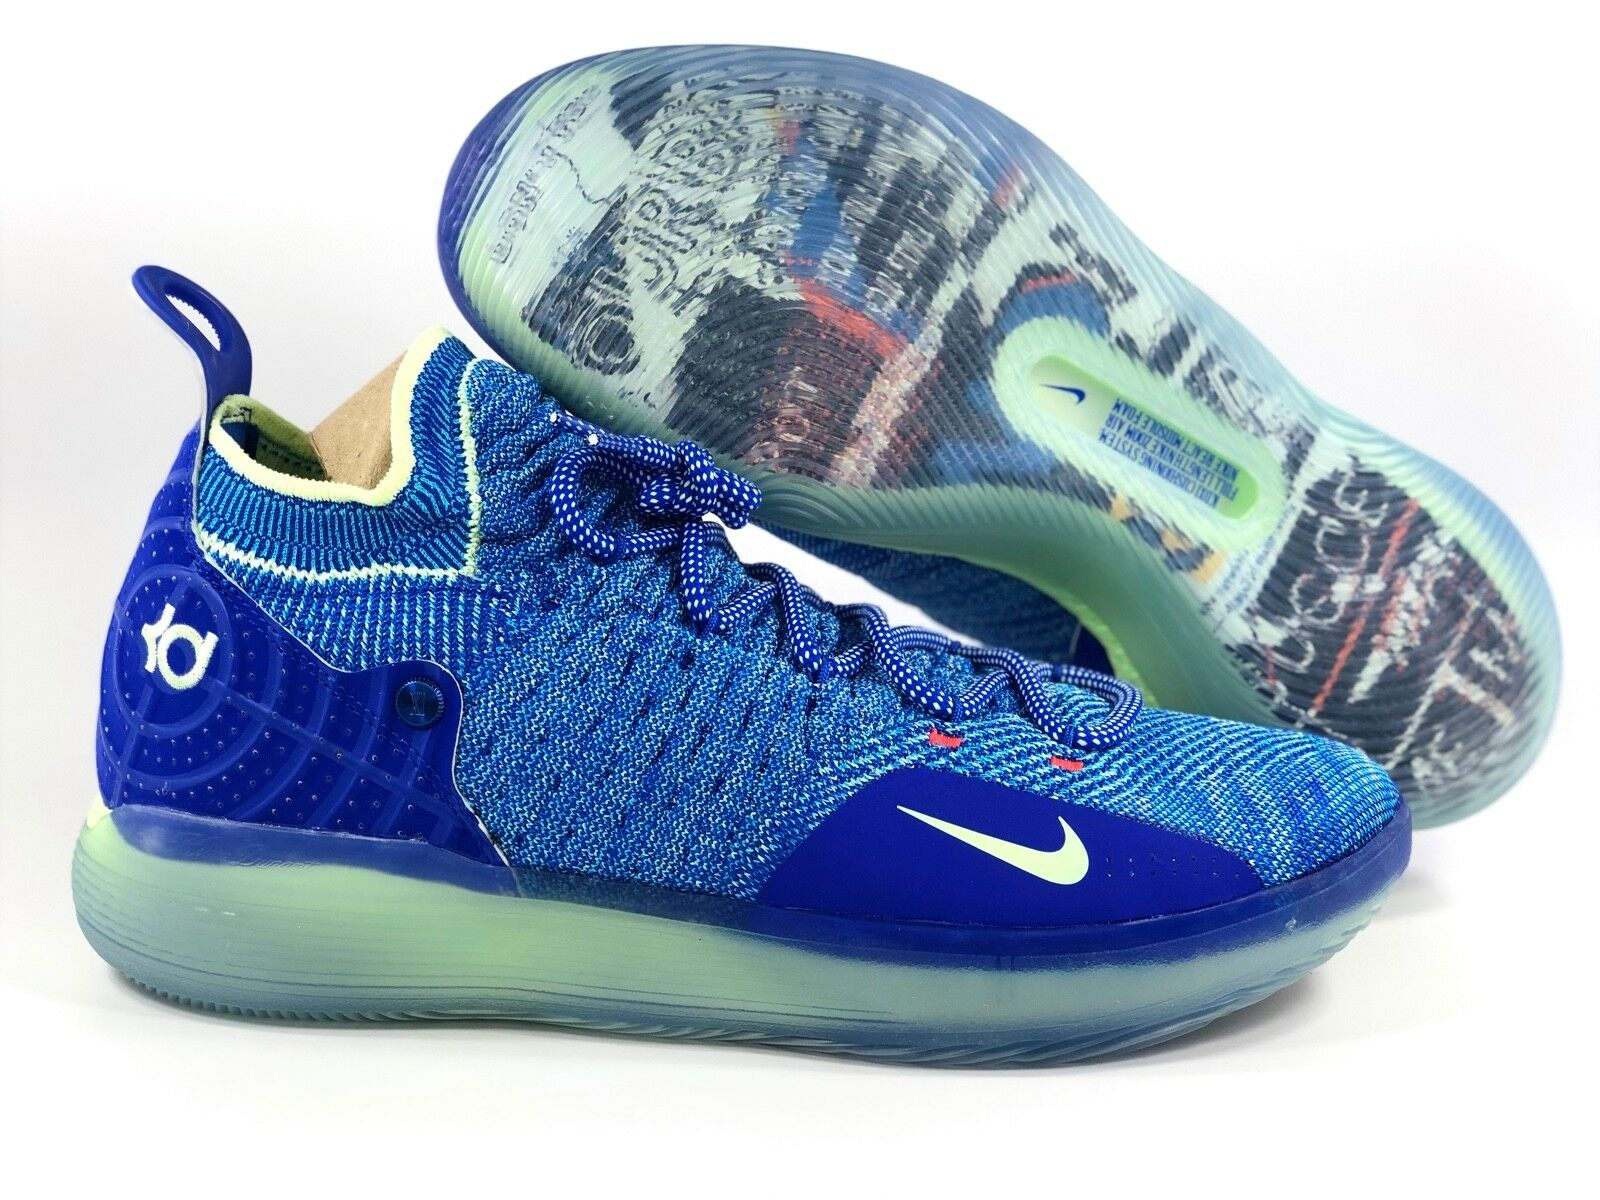 newest 6a889 296f1 ... 50% off nike zoom kd mens 11 paranoid multicolor blue green yellow  ao2604 900 mens